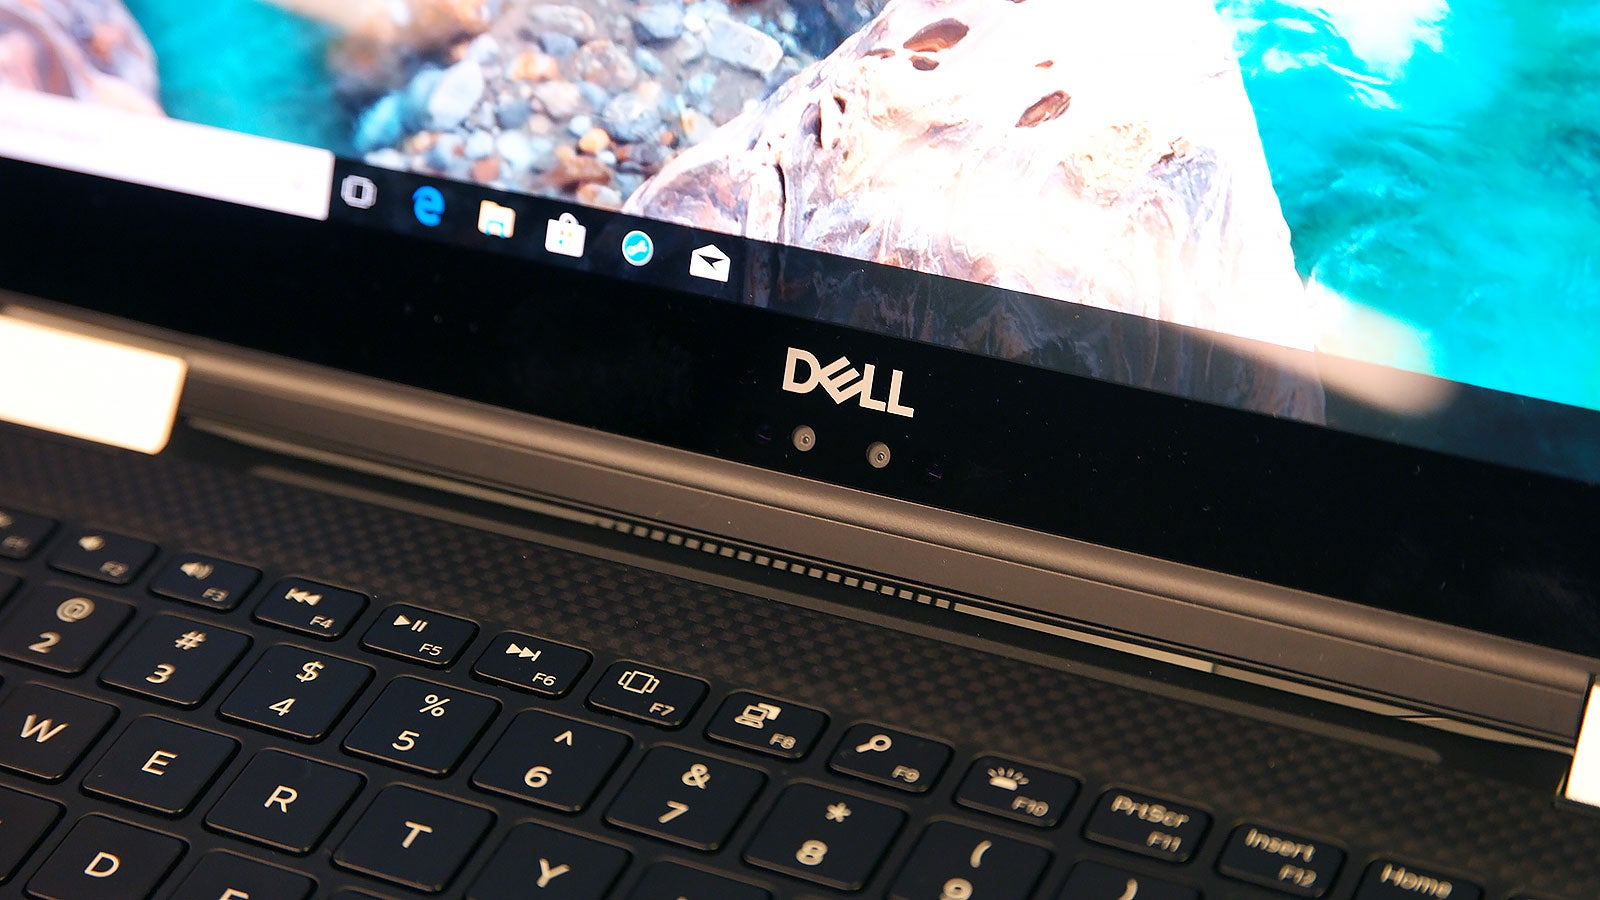 Dell's XPS 15 2-in-1 Wants To Be The Anti-MacBook Pro